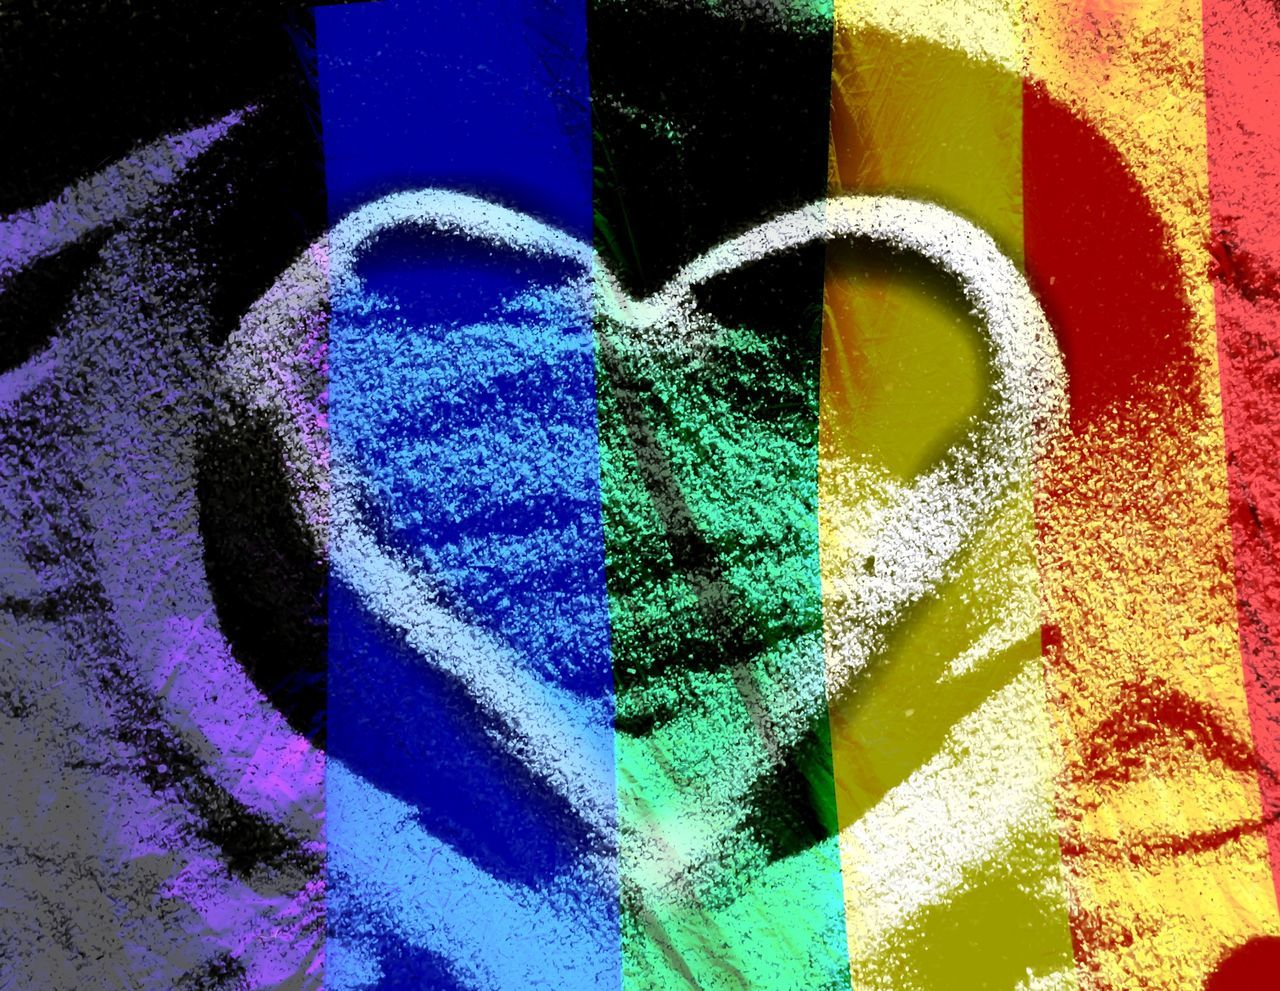 Capturing Freedom Freedom Love Free To Be Me Heart Gay Pride Carved In Sand Colours Rainbow Flag